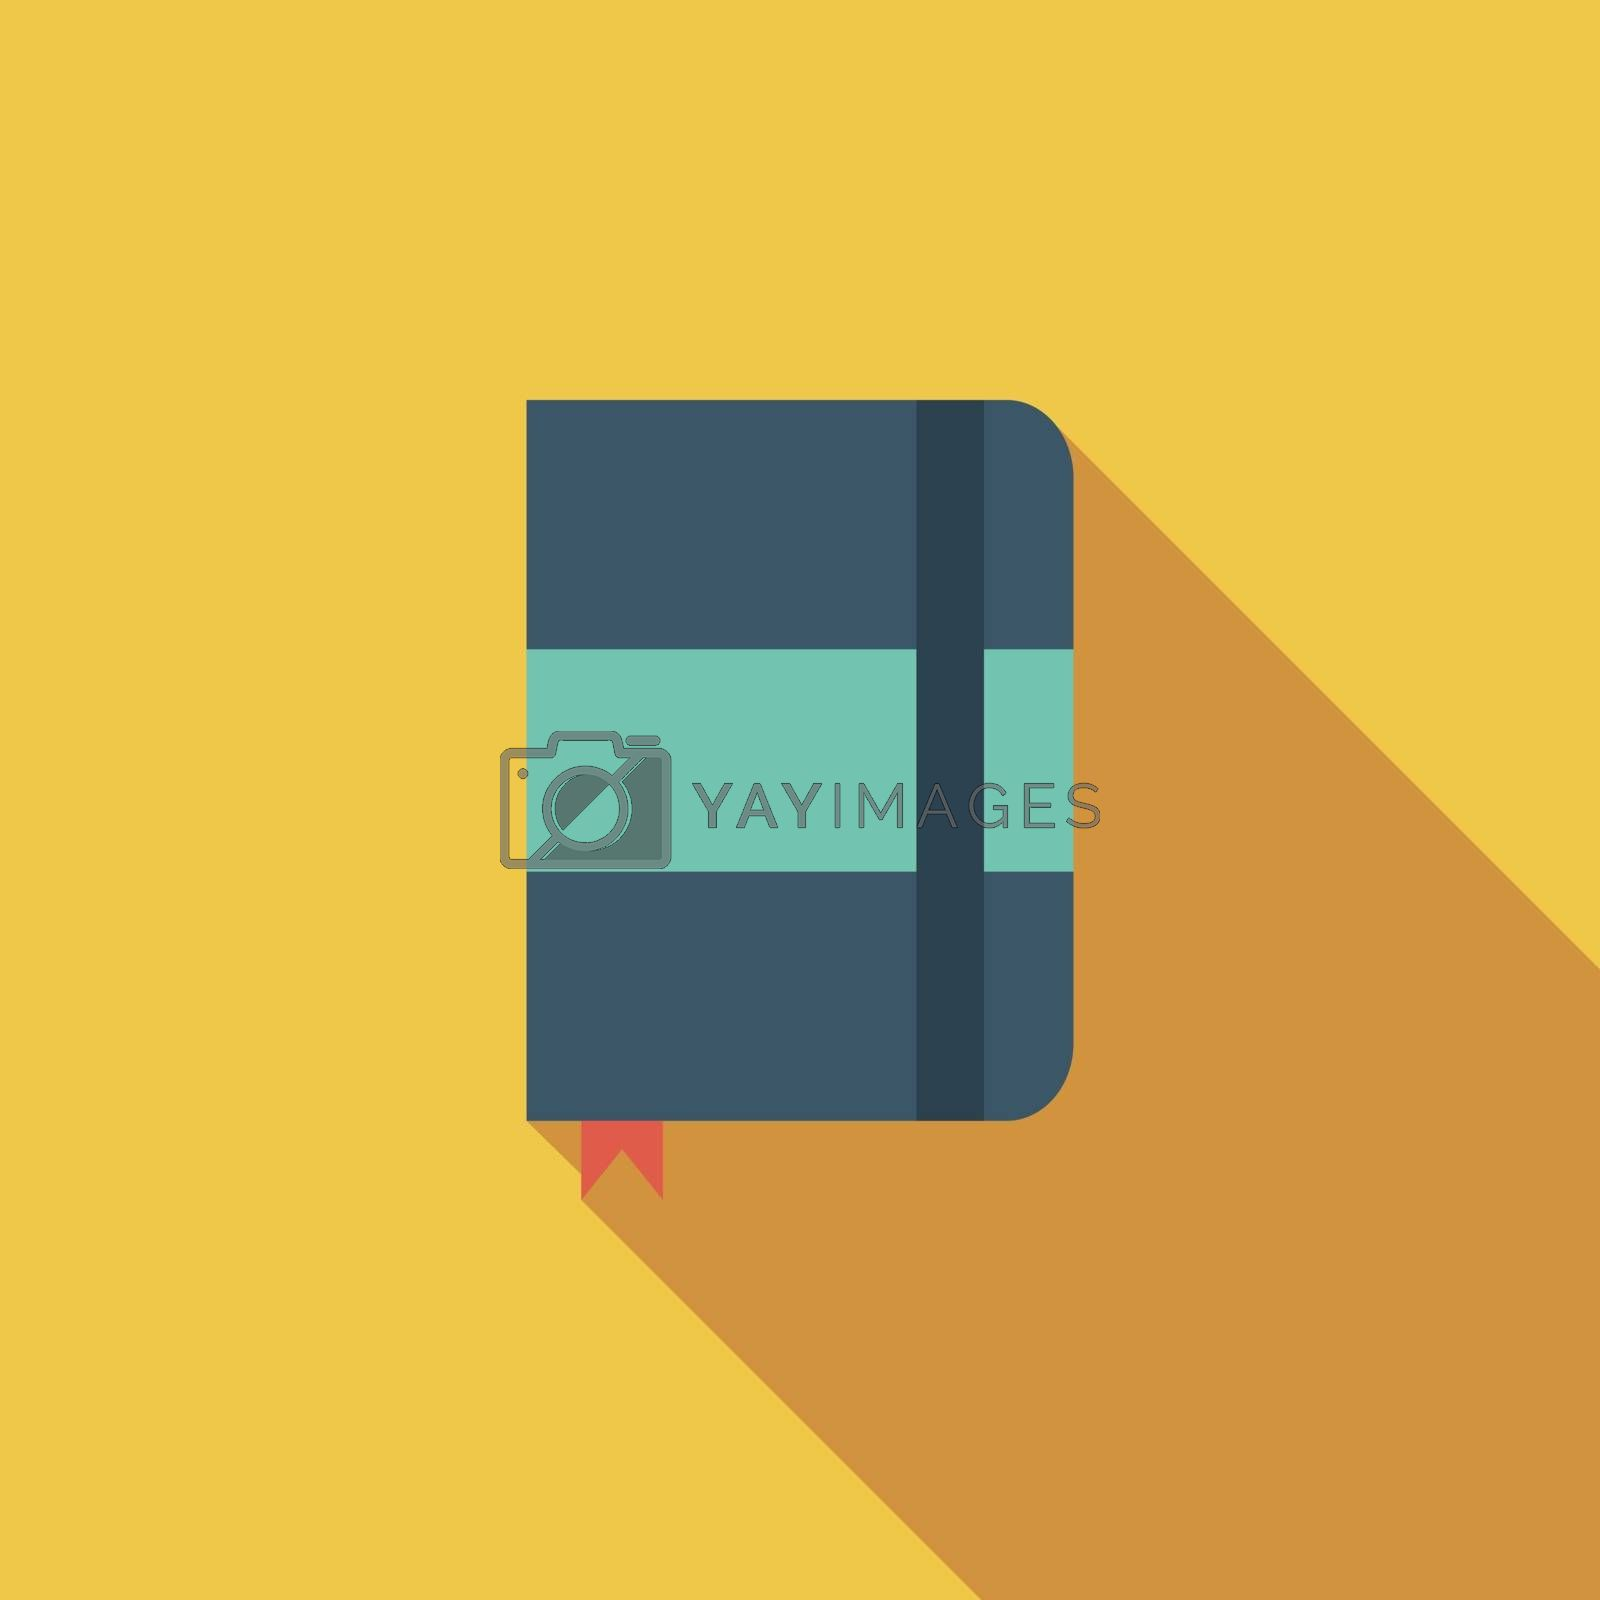 Paper notebook icon. Flat vector related icon with long shadow for web and mobile applications. It can be used as - logo, pictogram, icon, infographic element. Vector Illustration.